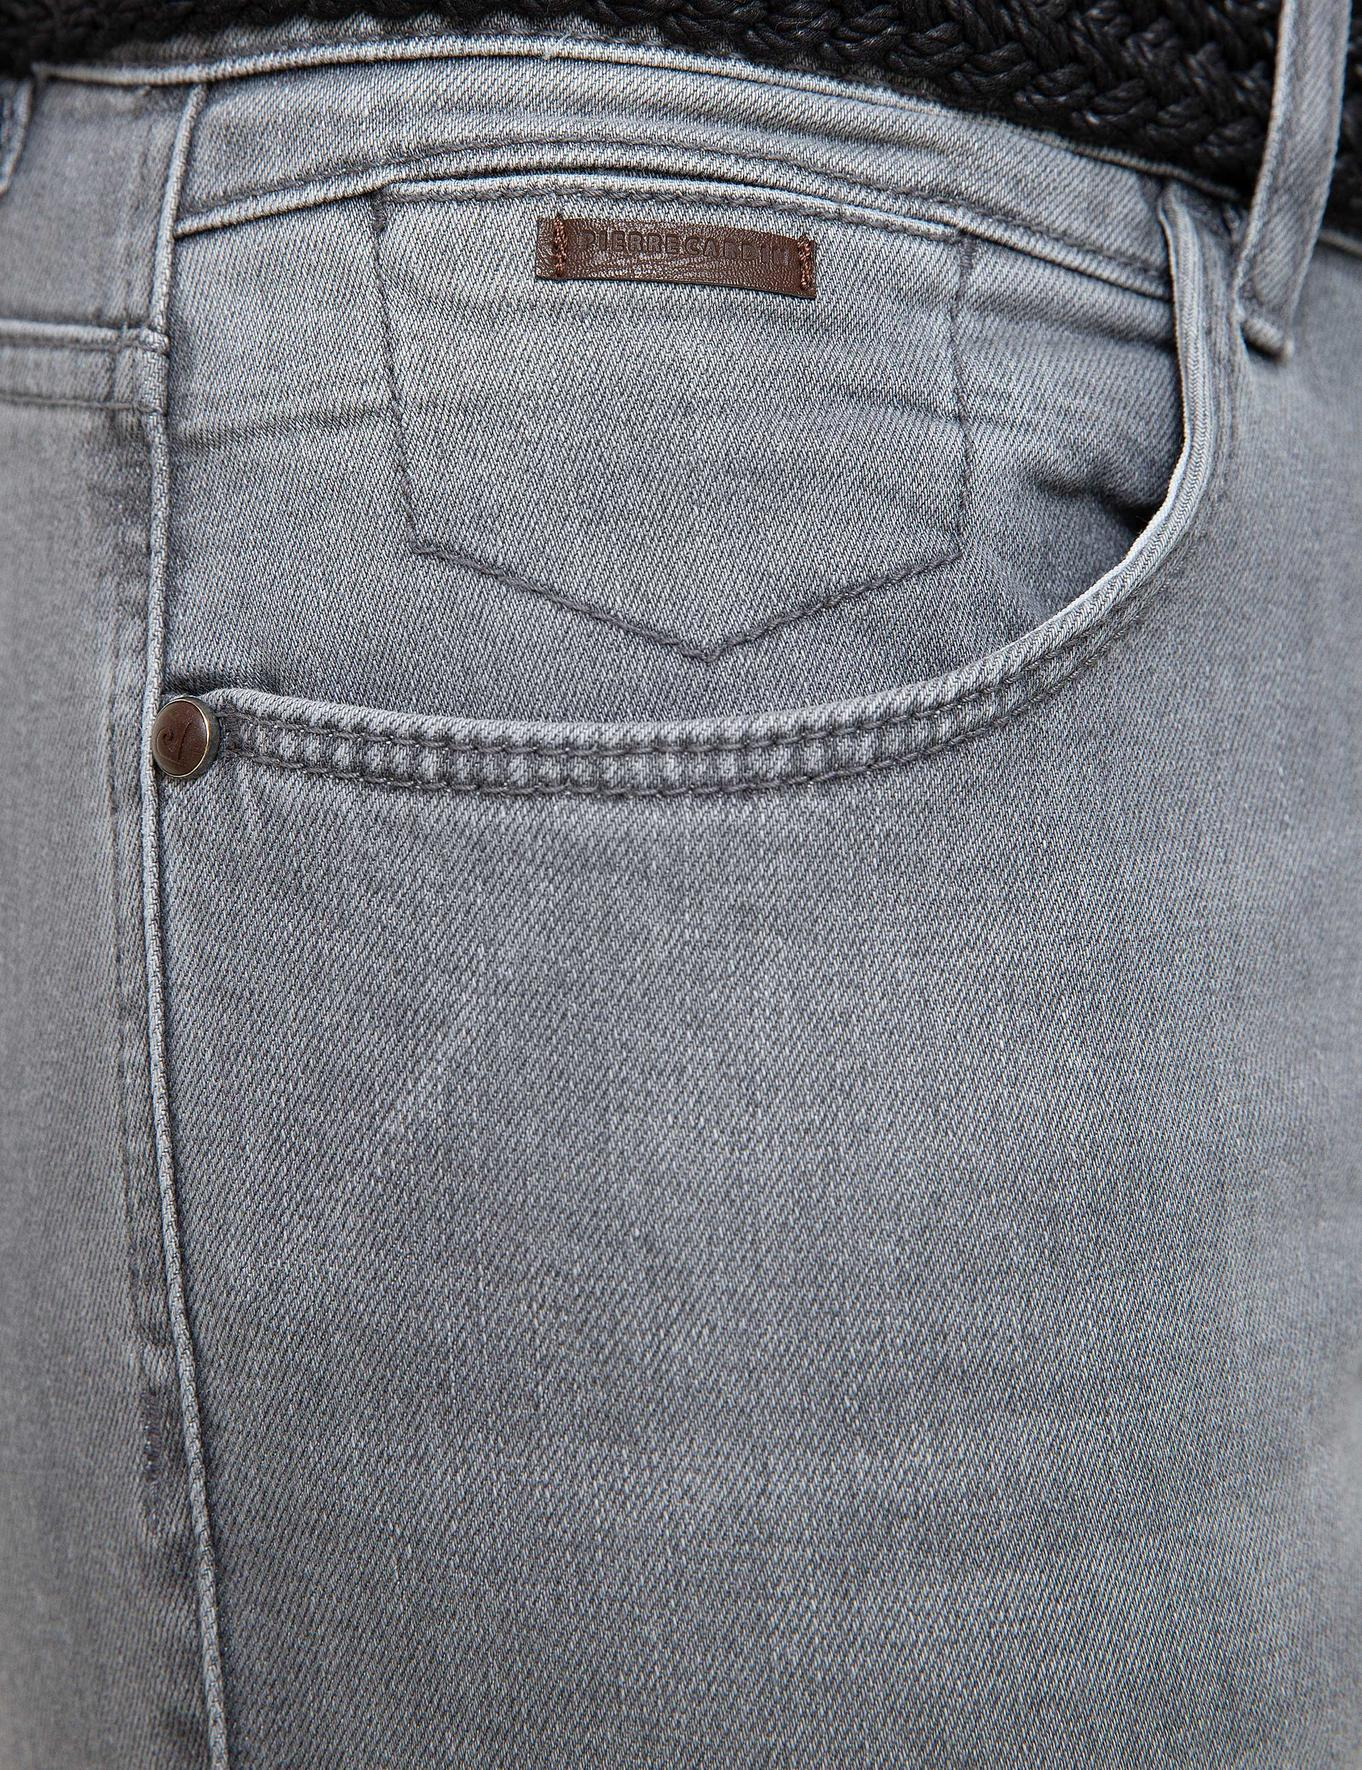 Gri Denim Pantolon